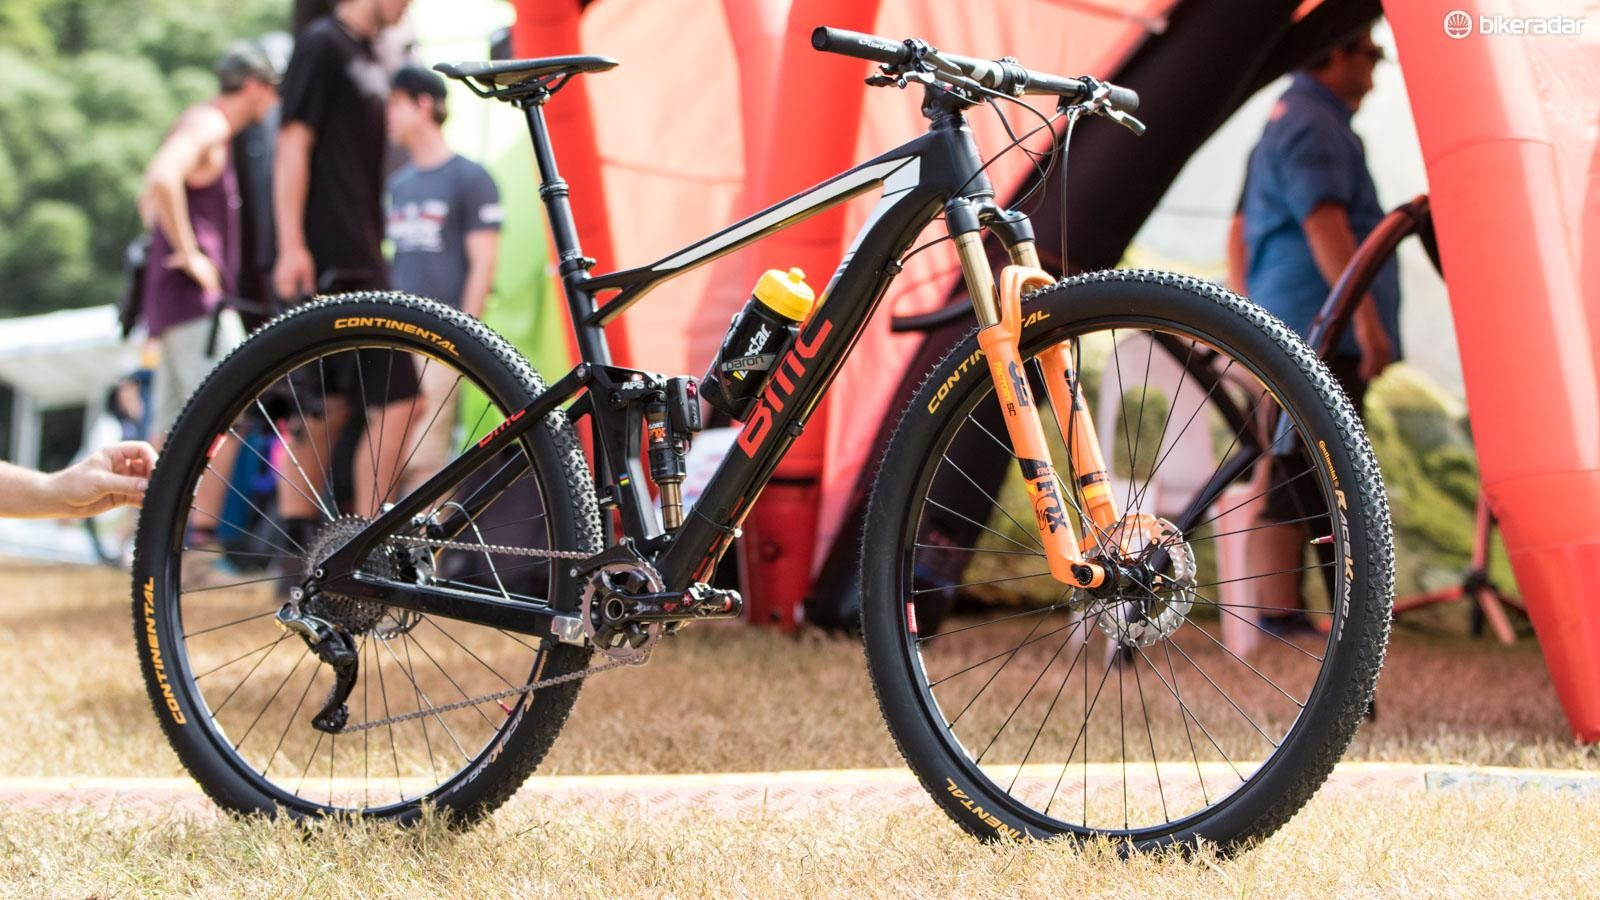 Ultra progressive in setup, Julien Absalon's BMC Fourstroke 01 could be a sign of what cross country bikes are set to become